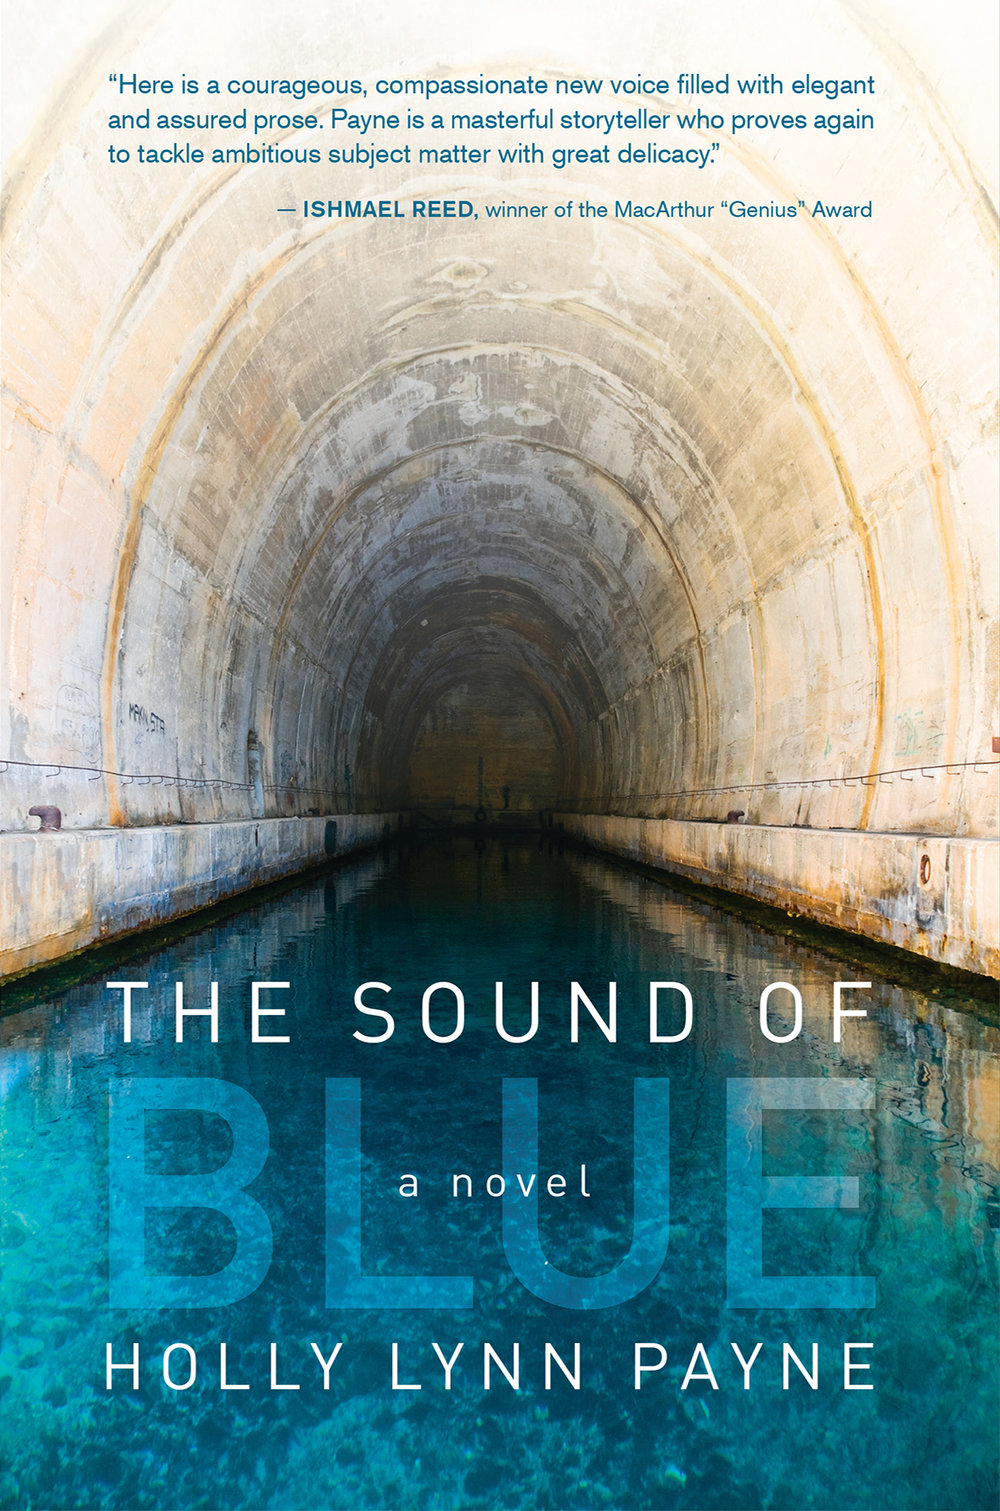 - The Sound of Blue takes readers on an exquisite and soulful journey into a rare part of the world, exploring the healing power of music in the lives of three strangers during the last Balkan War. Sara Foster has left America for the adventure of a lifetime-teaching English to the elite of Hungary, but ends up teaching in a refugee camp instead and falling in love with one of her students, a celebrated synesthete composer. When he mysteriously disappears from the camp, Sara finds herself crossing the border into his war-torn homeland, determined to return the musical masterpiece that he has left behind. In a perilous journey that takes her to Dubrovnik, a magnificent stone city on the Croatian Riviera, Sara meets Luka, a troubled drummer boy, who's captivated the town's attention and heart and who holds the secret to the composer's fate and her own. Bringing to life a world that readers seldom have the opportunity to see, The Sound of Blue reveals poignant truths about the quests for refuge we all pursue.